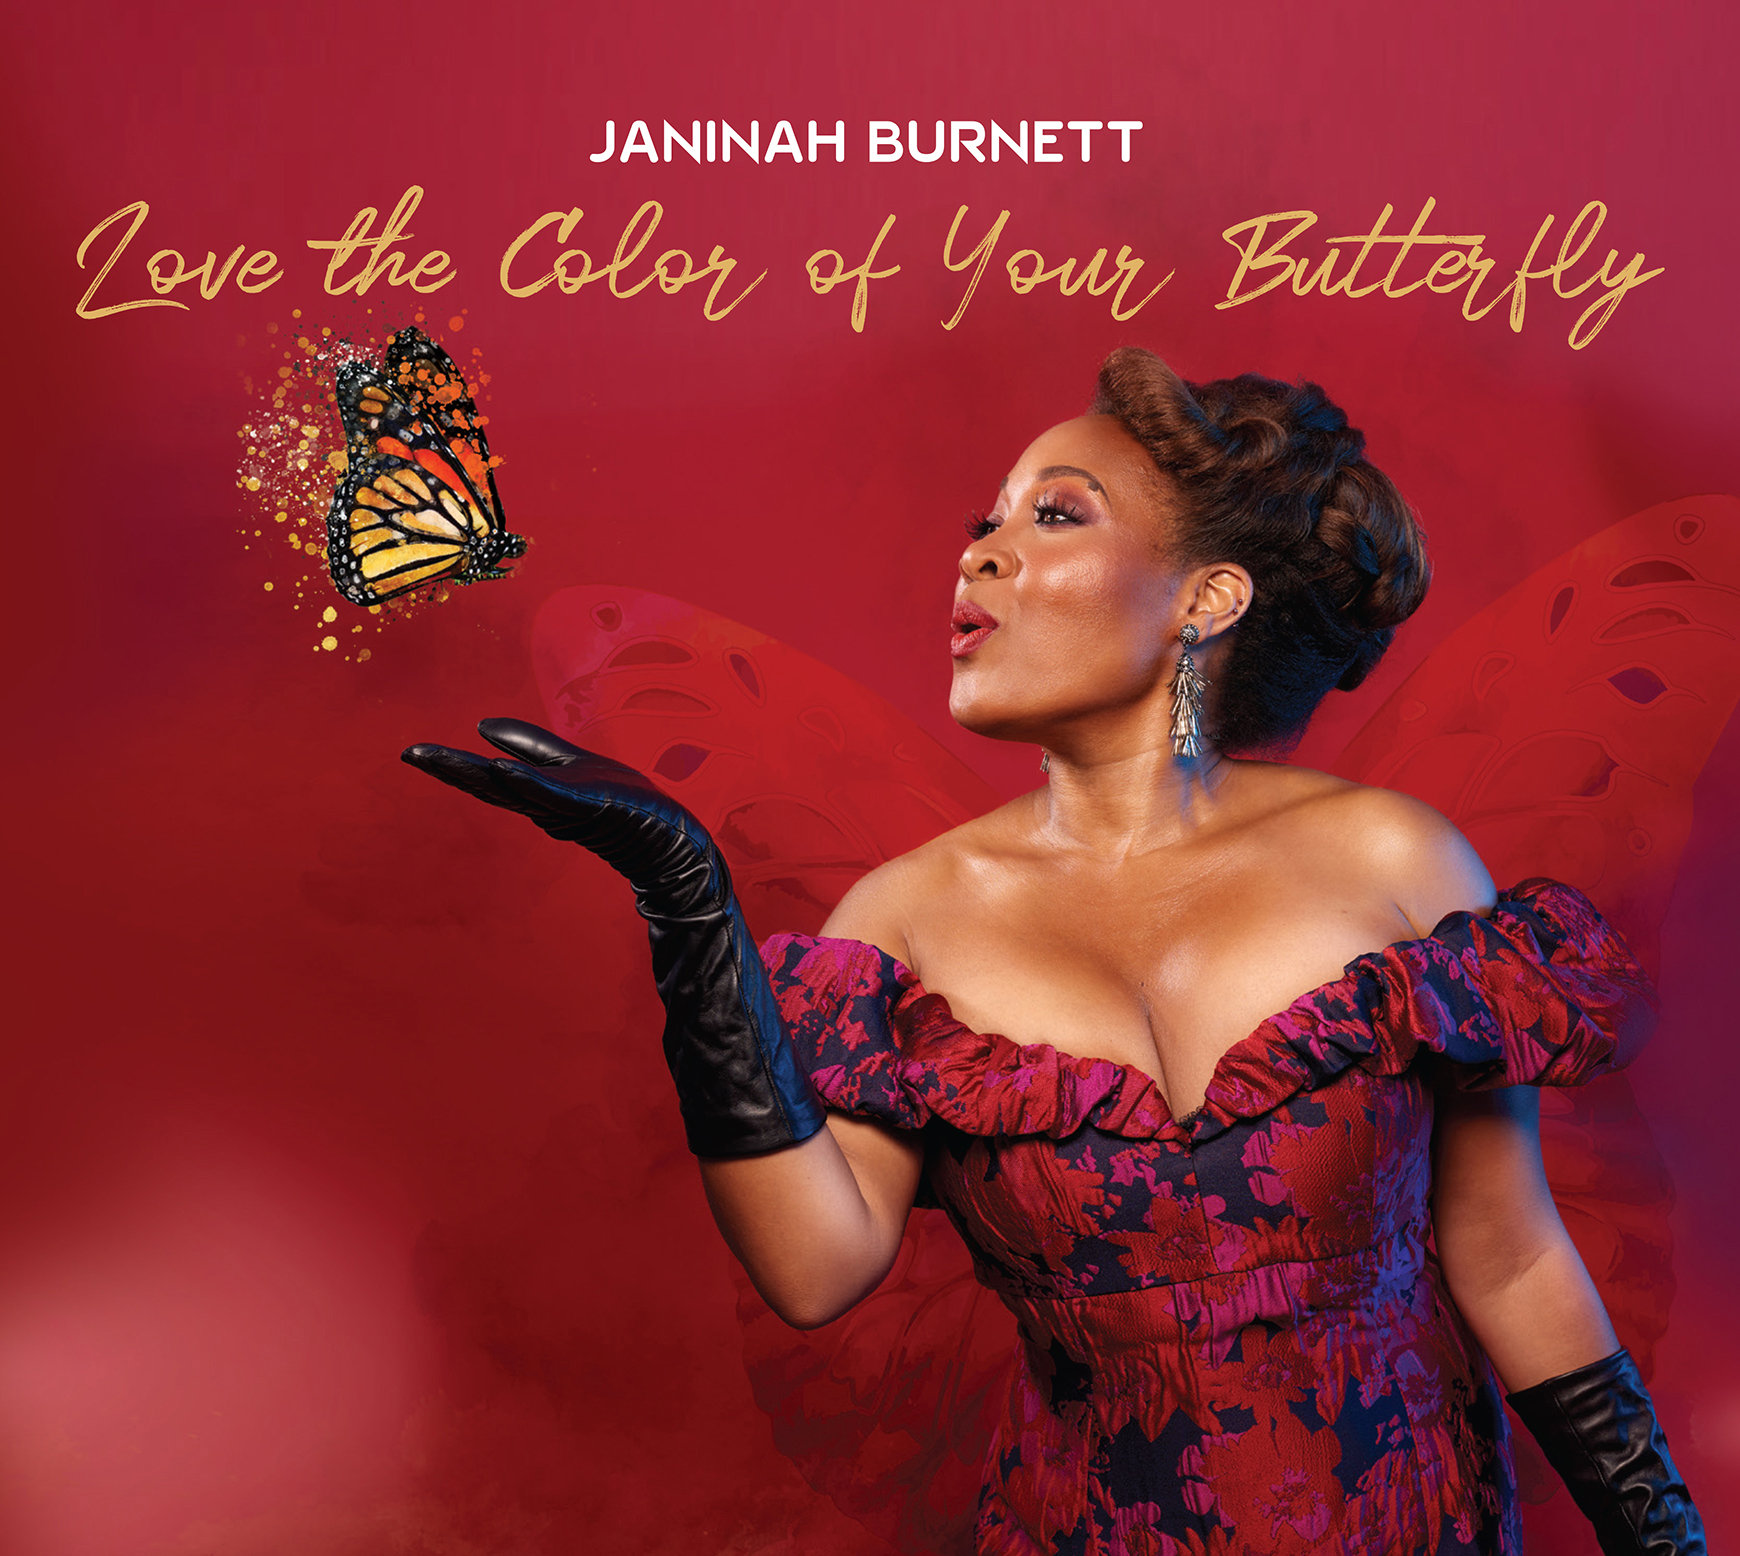 NEW RELEASE: Janinah Burnett's 'Love the Color of Your Butterfly' Due out February 12, 2021